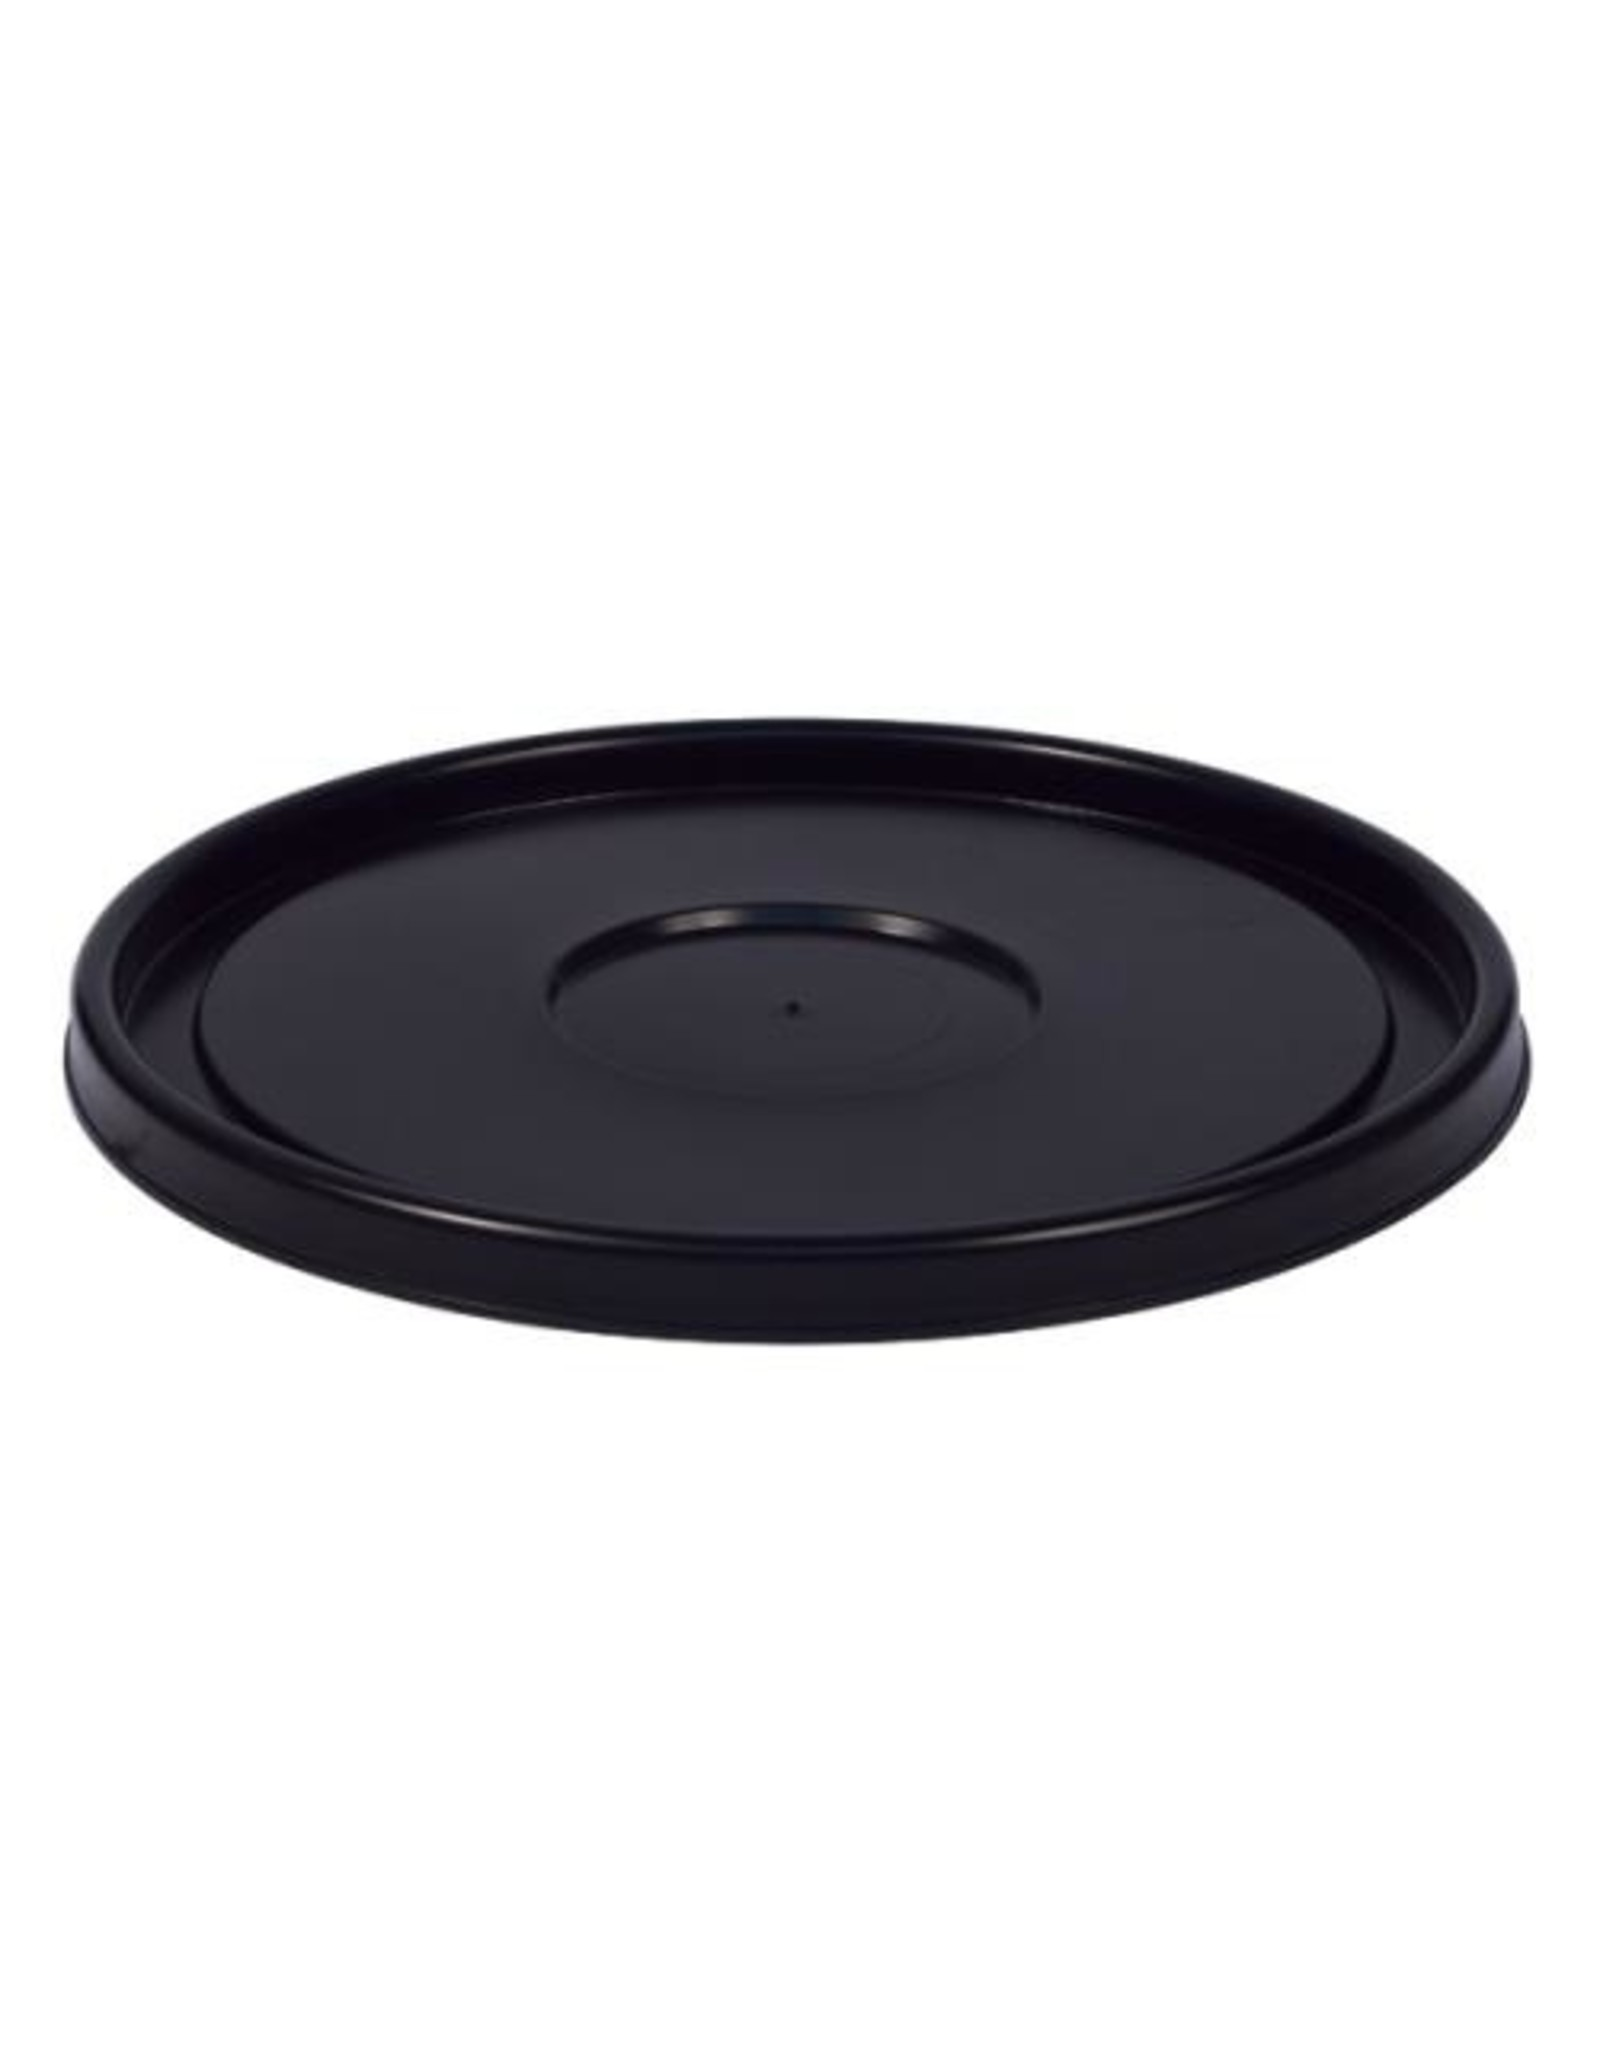 Bucket Lid - 5 Gallon (Black)